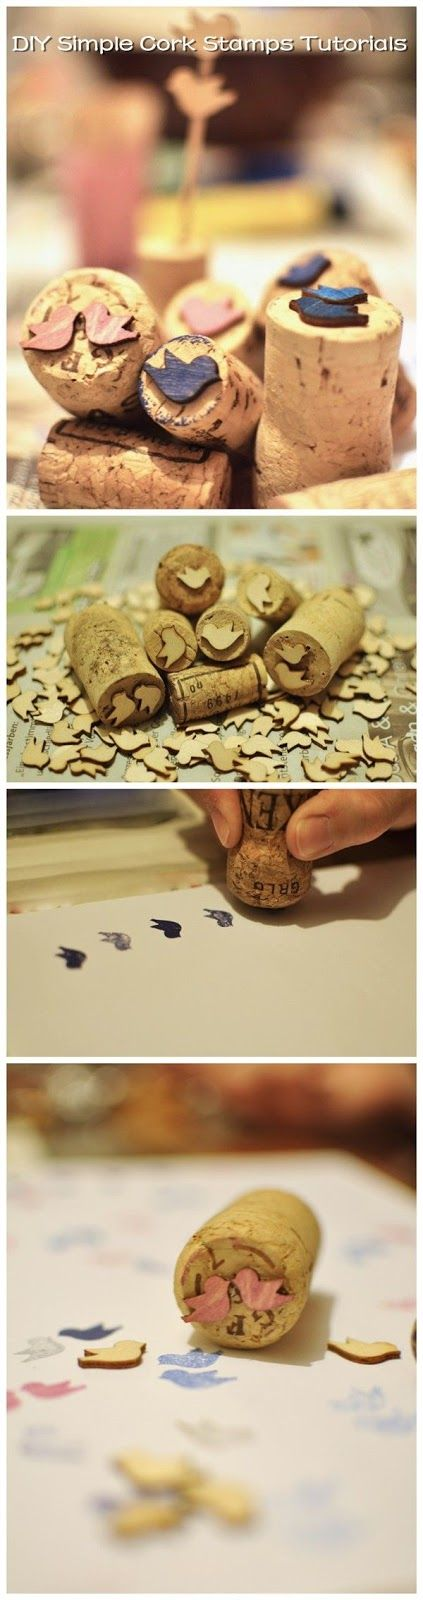 DIY Simple Cork Stamps